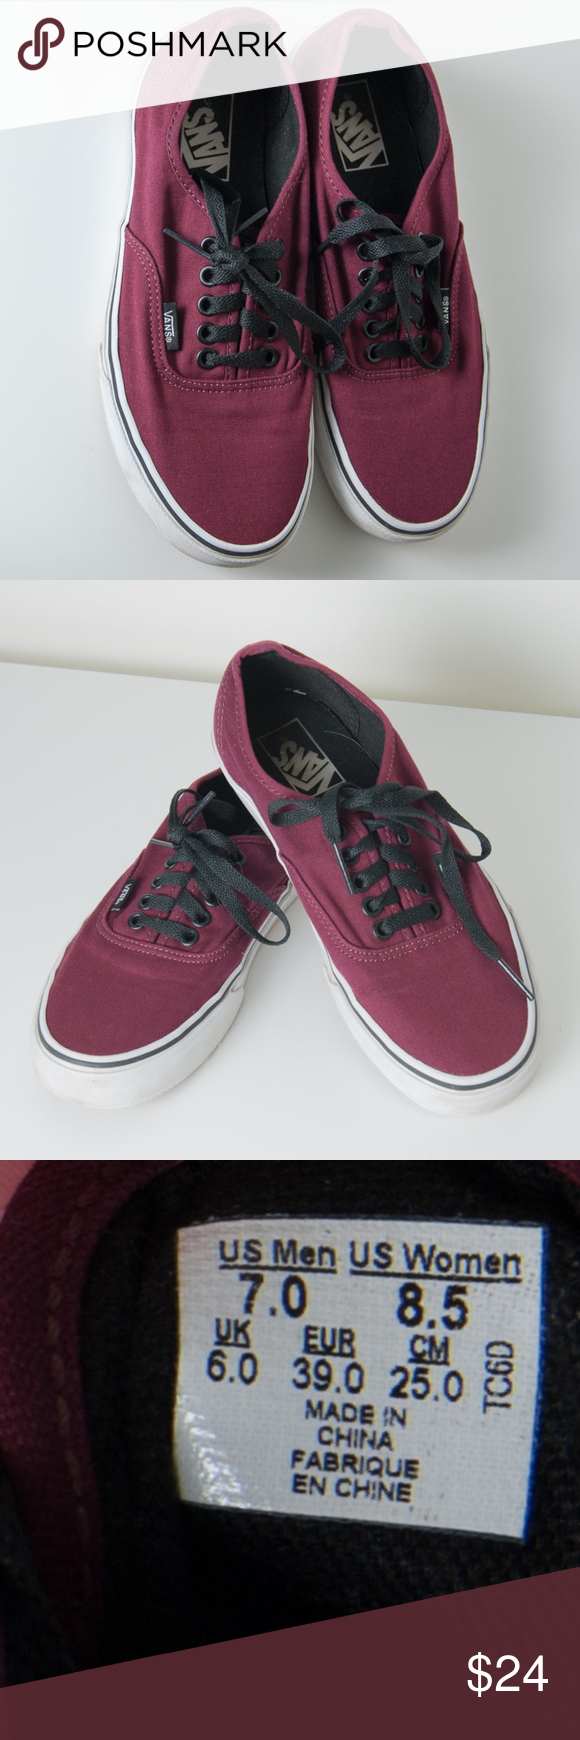 d0650c6a56b1 Vans Tennis Shoes Maroon Mens 7   Womens 8.5 Preloved but good condition  Vans Off The Wall Skate shoes. Maroon or burgundy canvas upper.